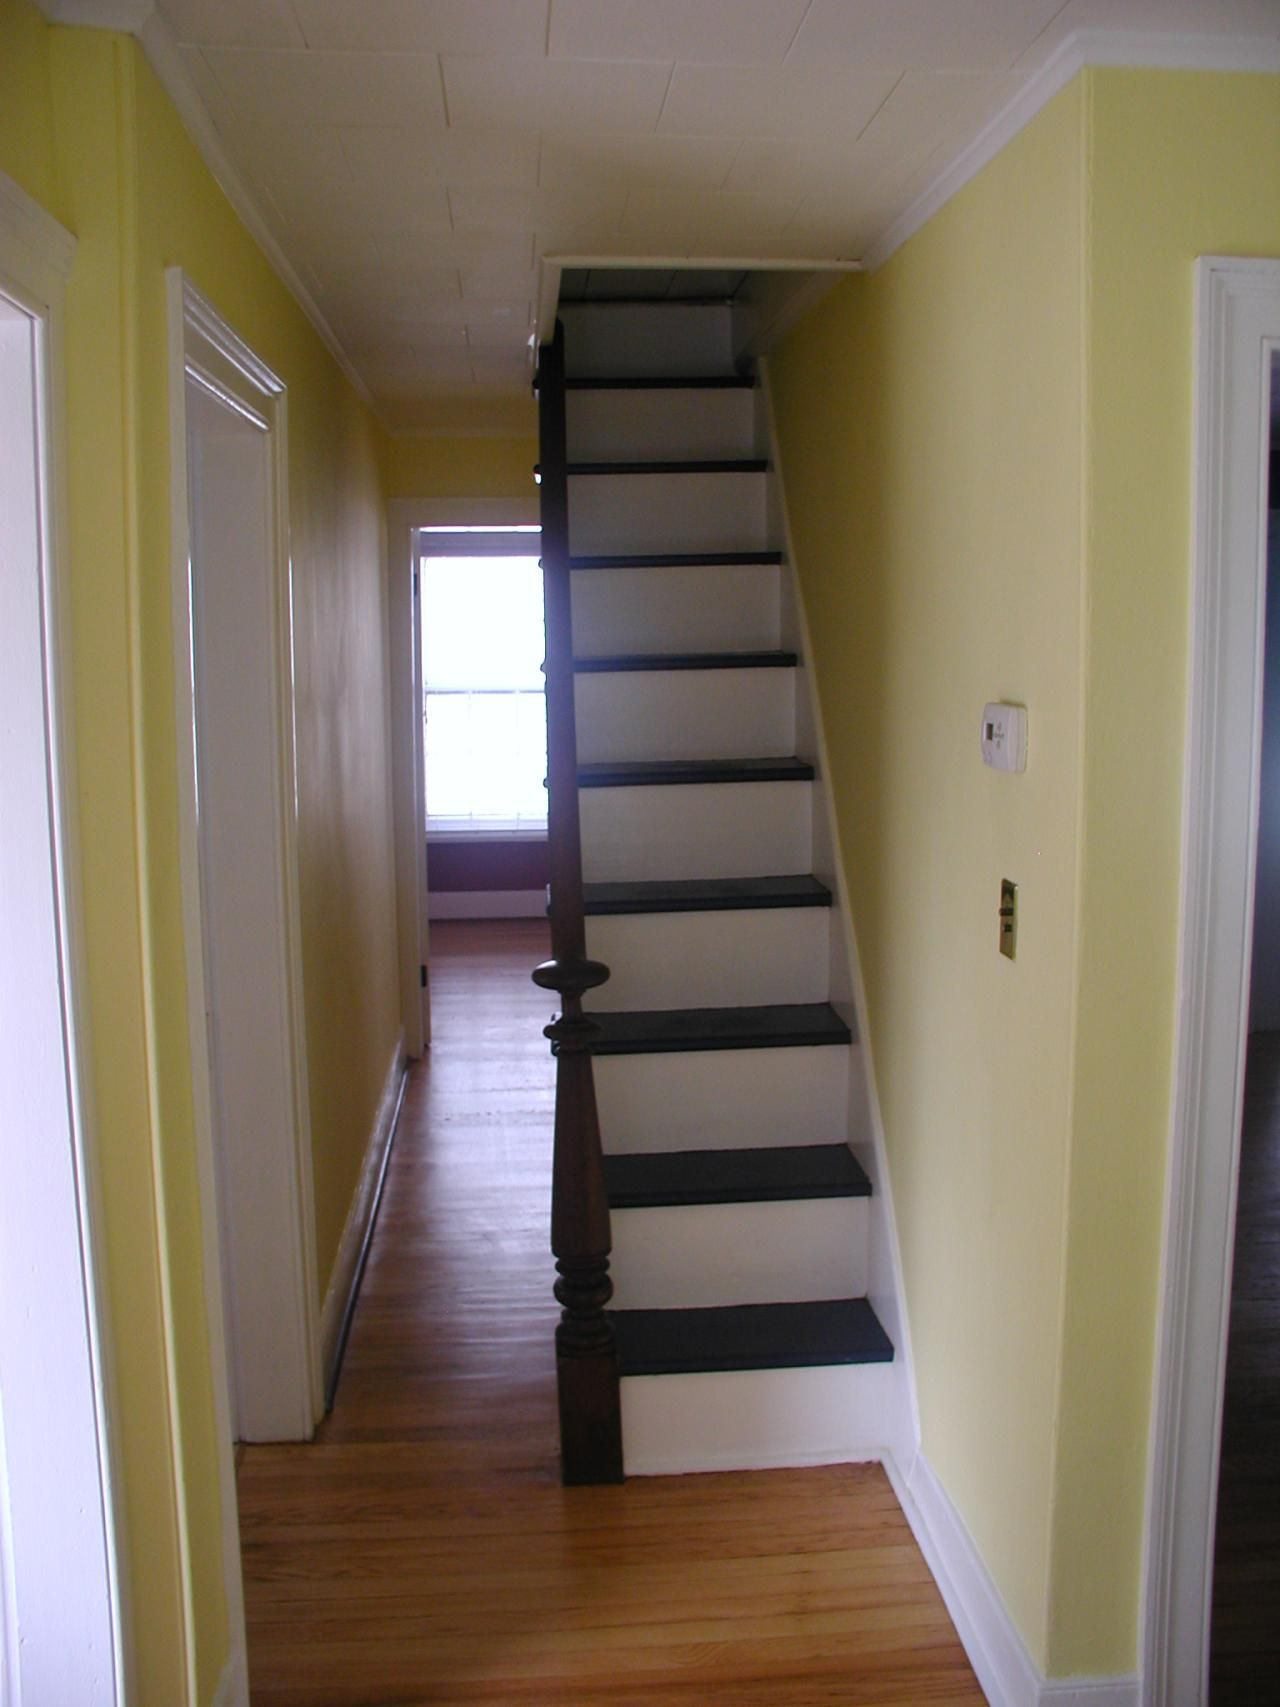 Staircase for small spaces home small footprint staircases pinterest attic attic stairs - Small space staircase image ...